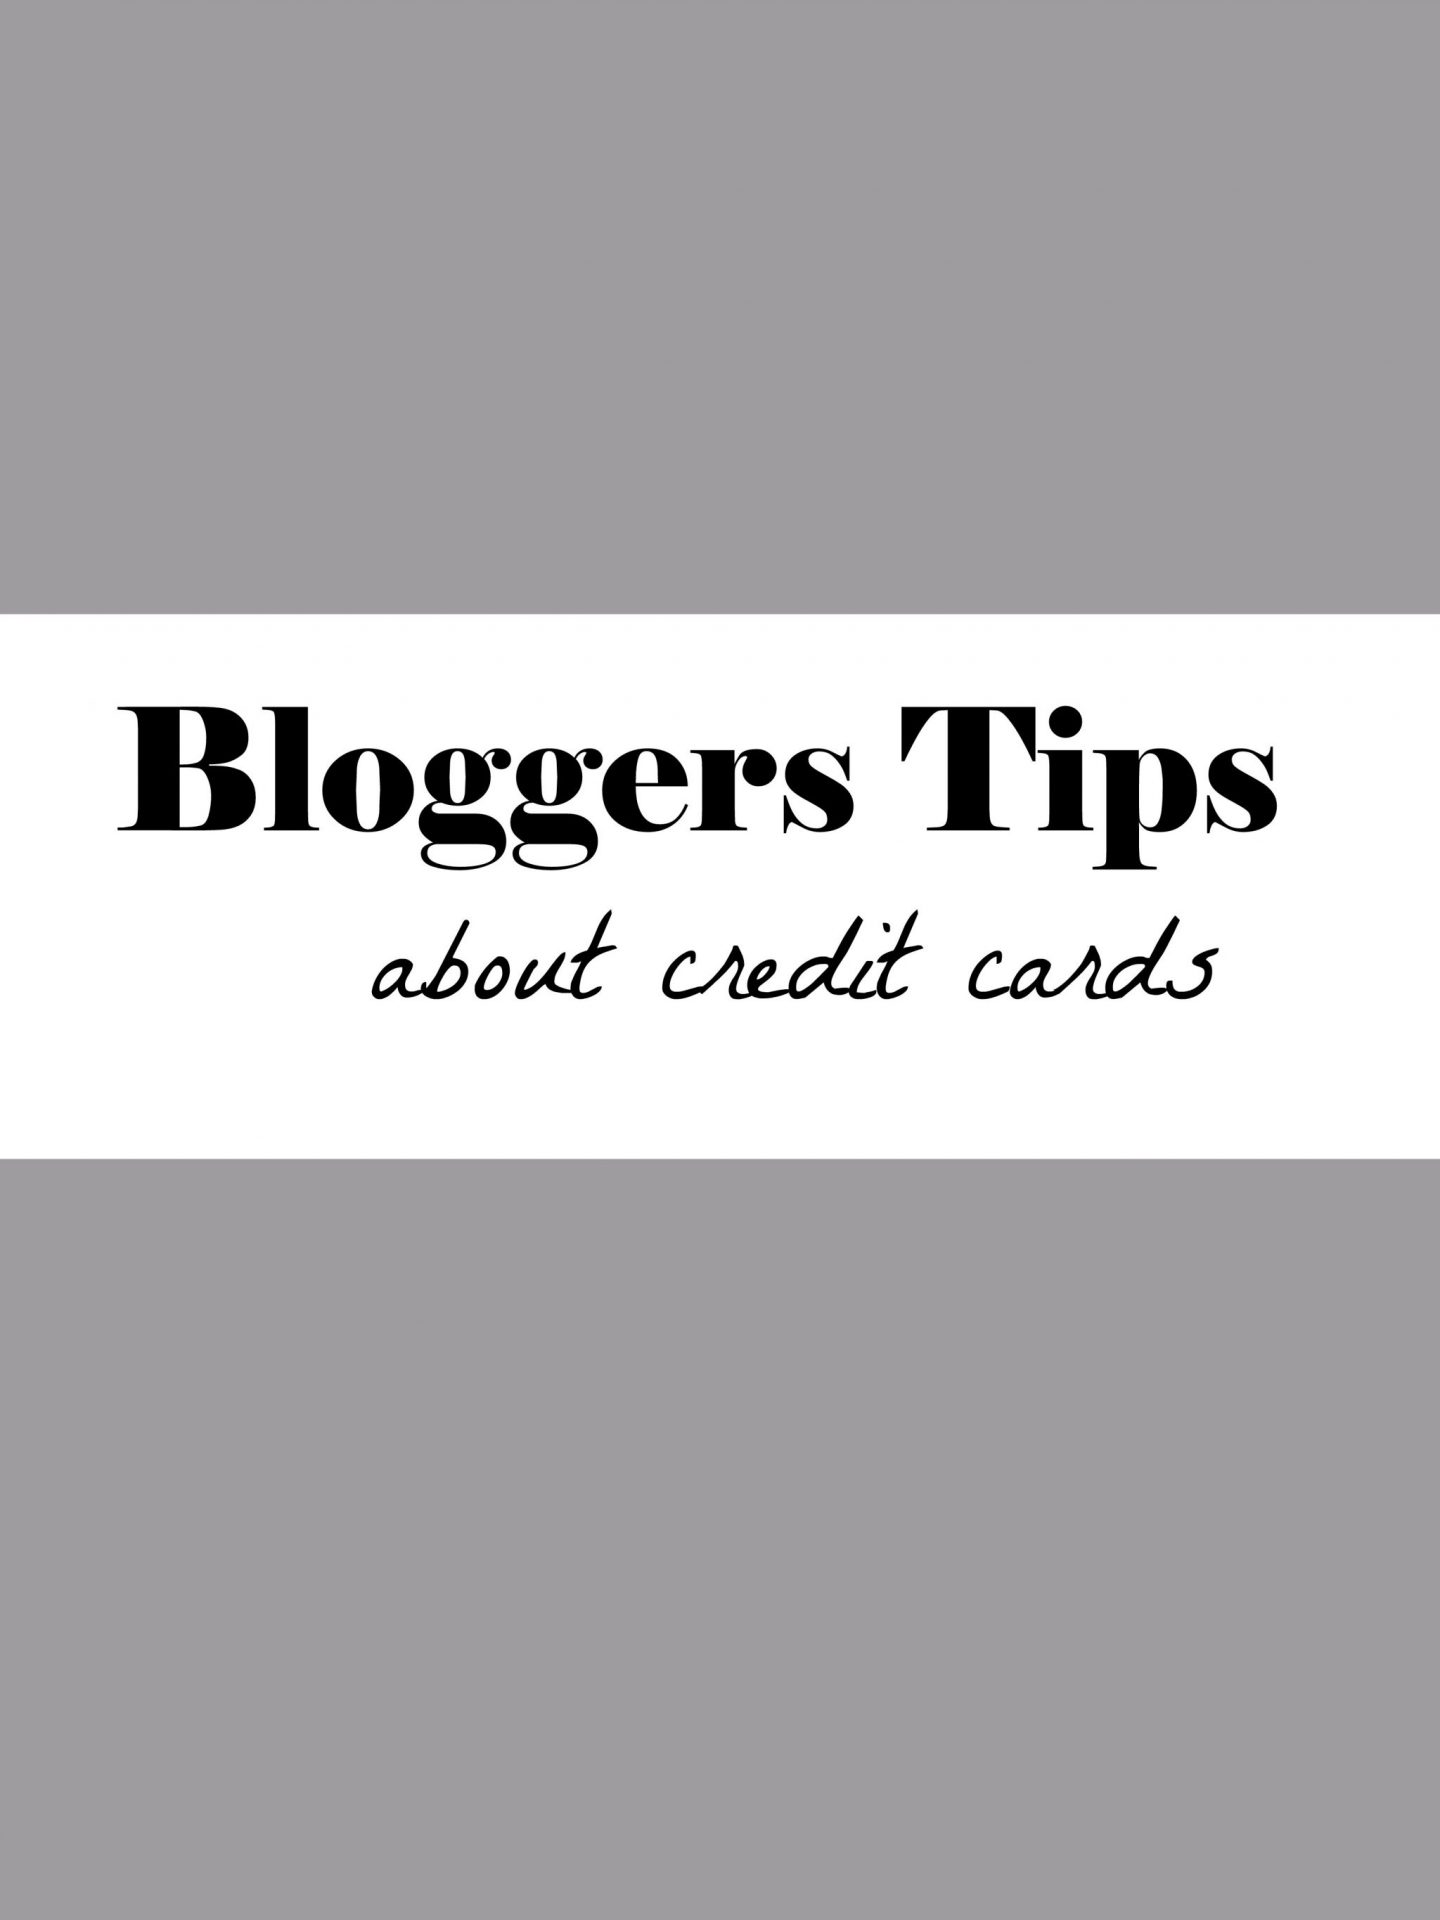 All About Credit Cards | Tips From Bloggers